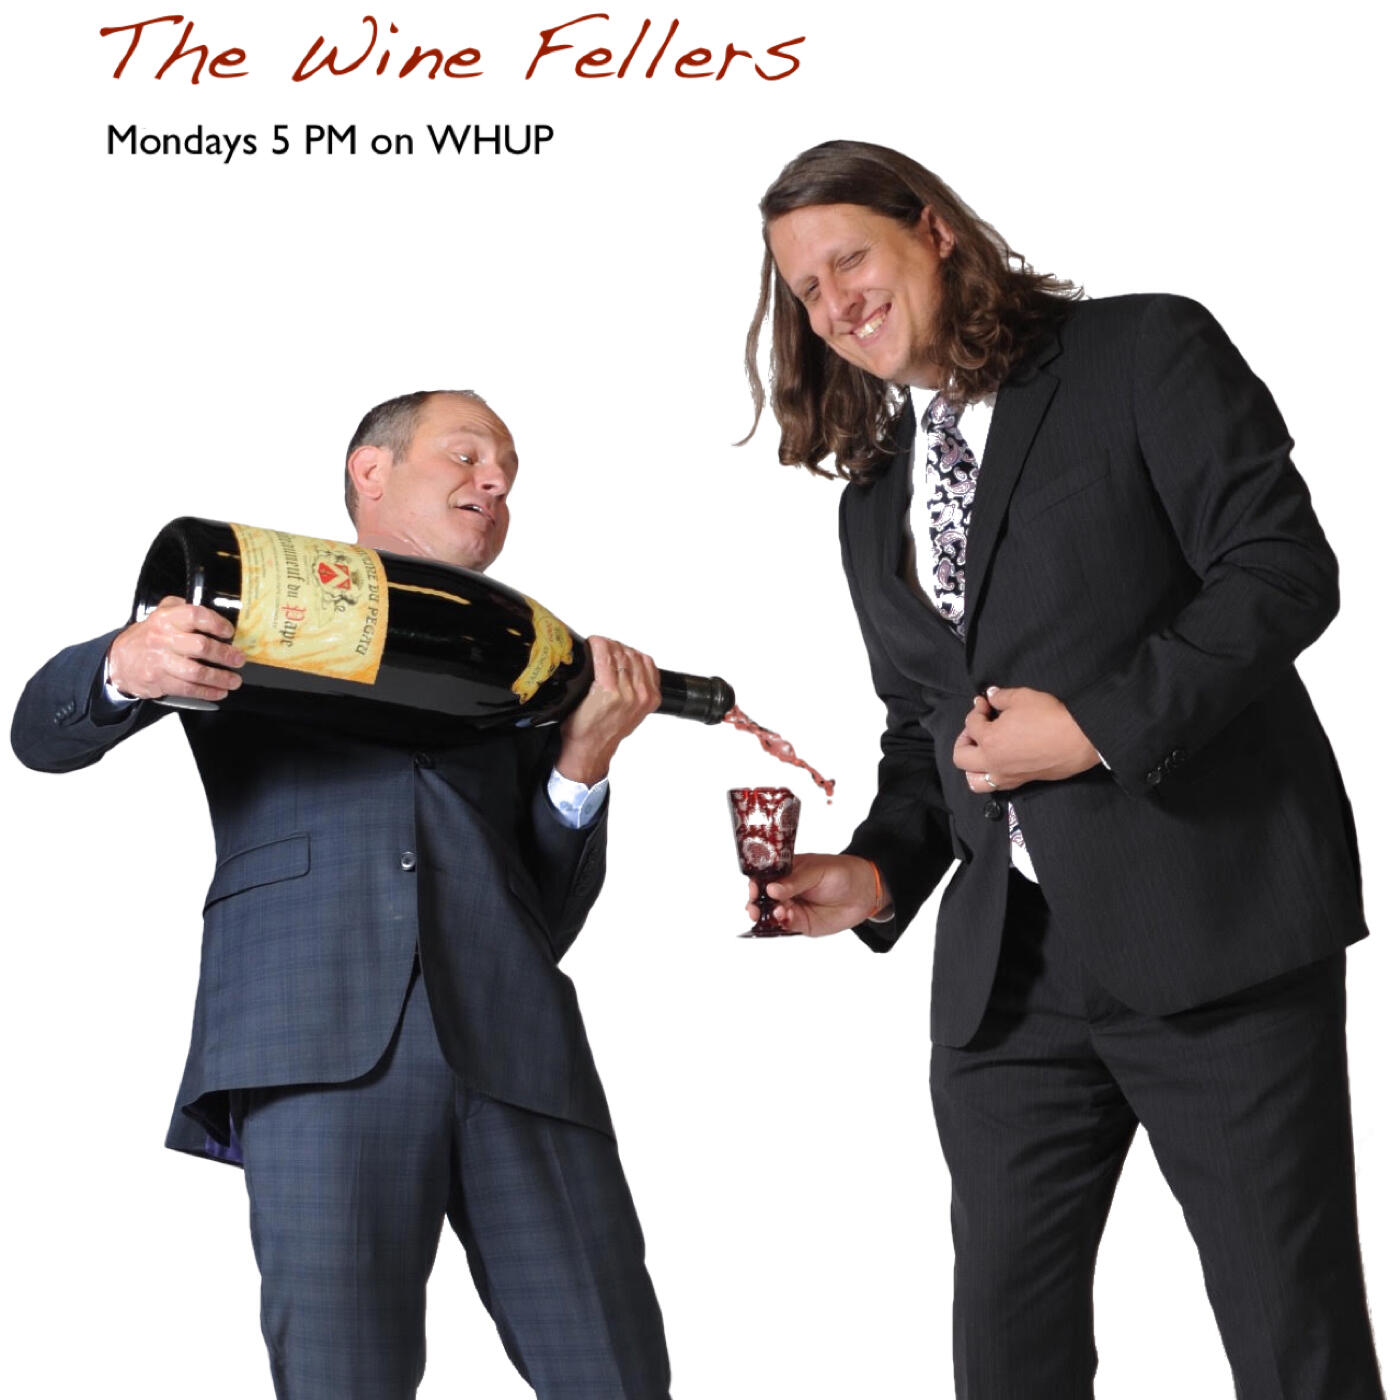 Listen to the The Wine Fellers - Listen to Past Shows!! Episode